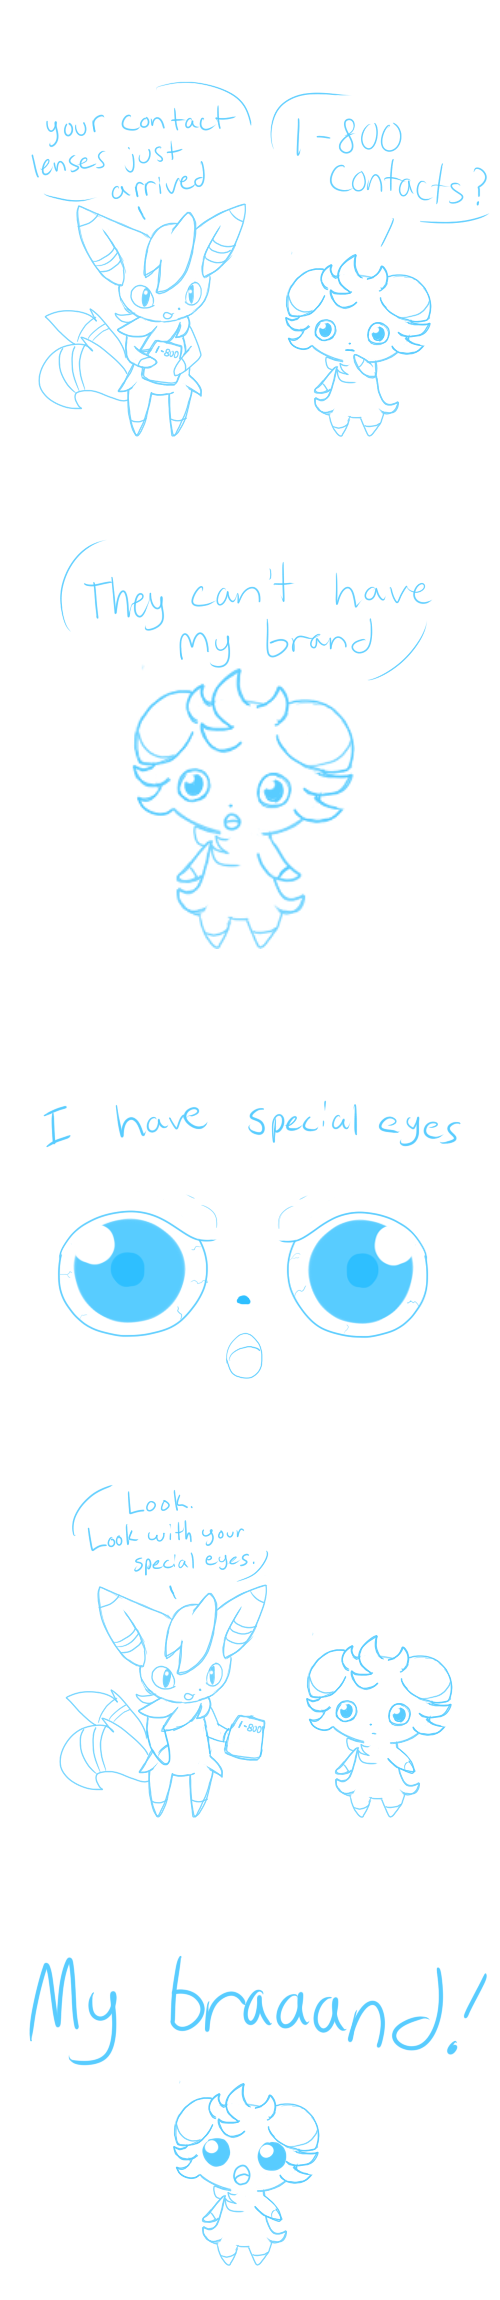 Espurr Has Special Eyes By Little Painter On Deviantart